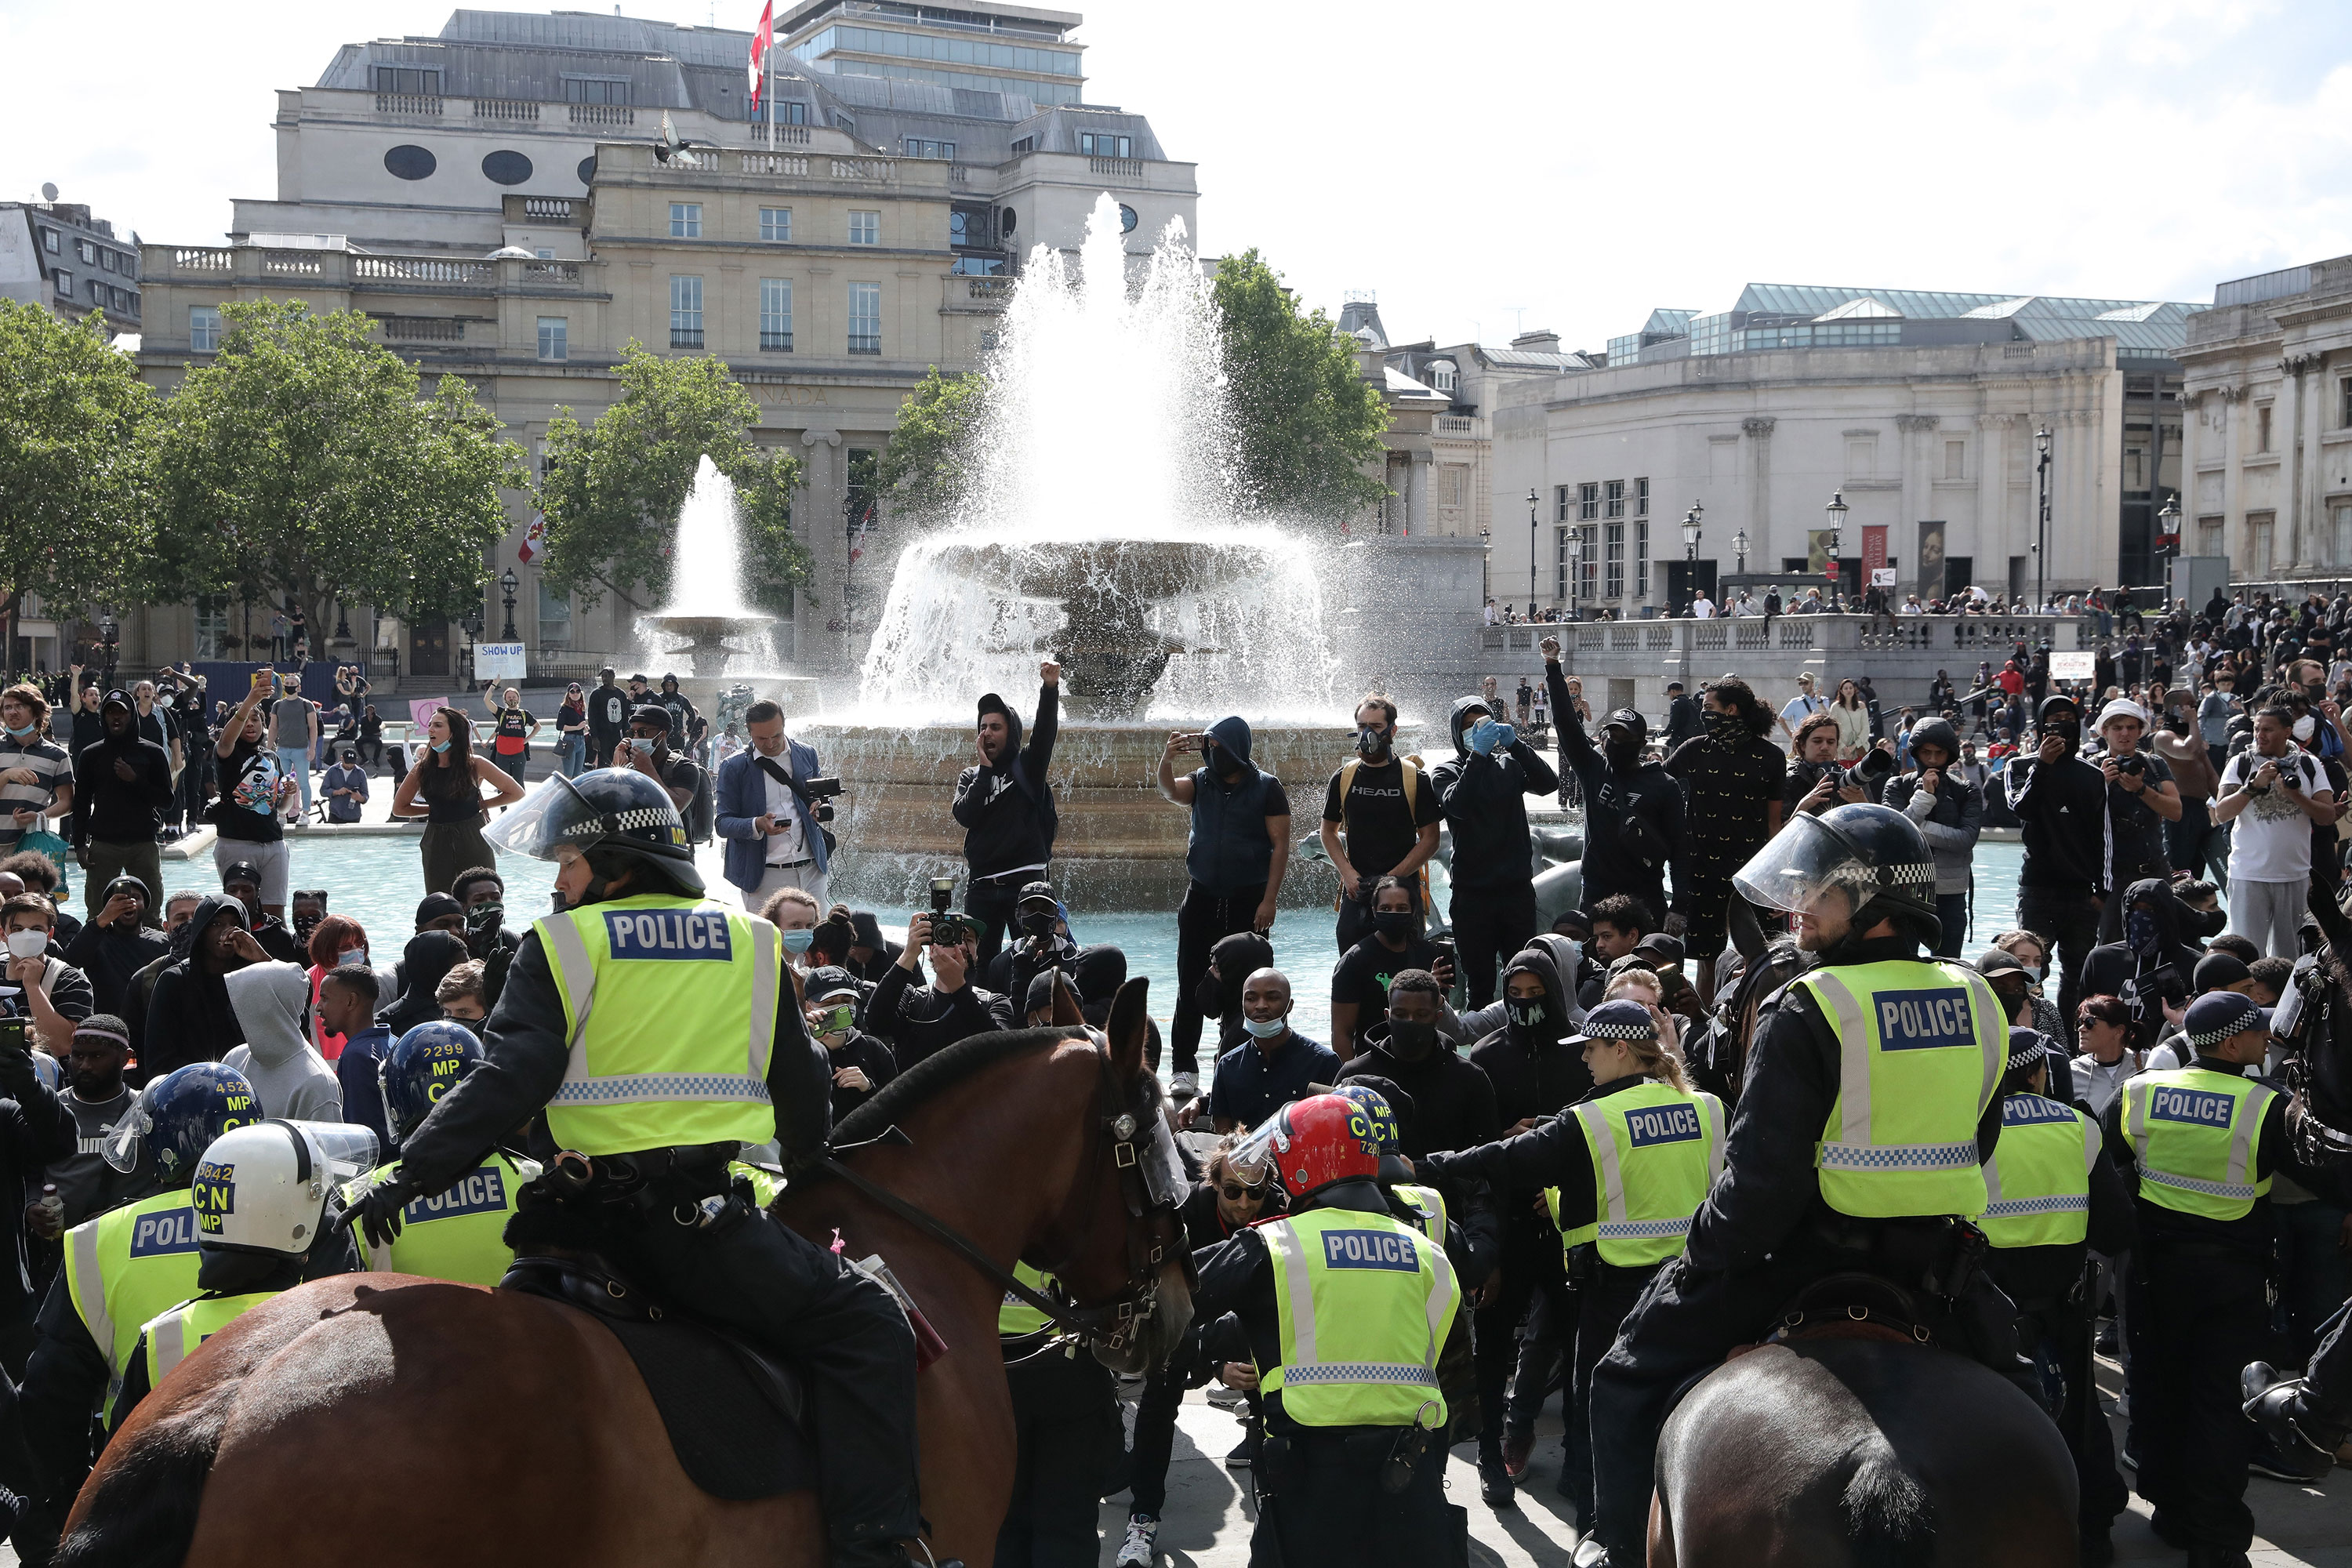 Police monitor protesters in London, England, on June 13.